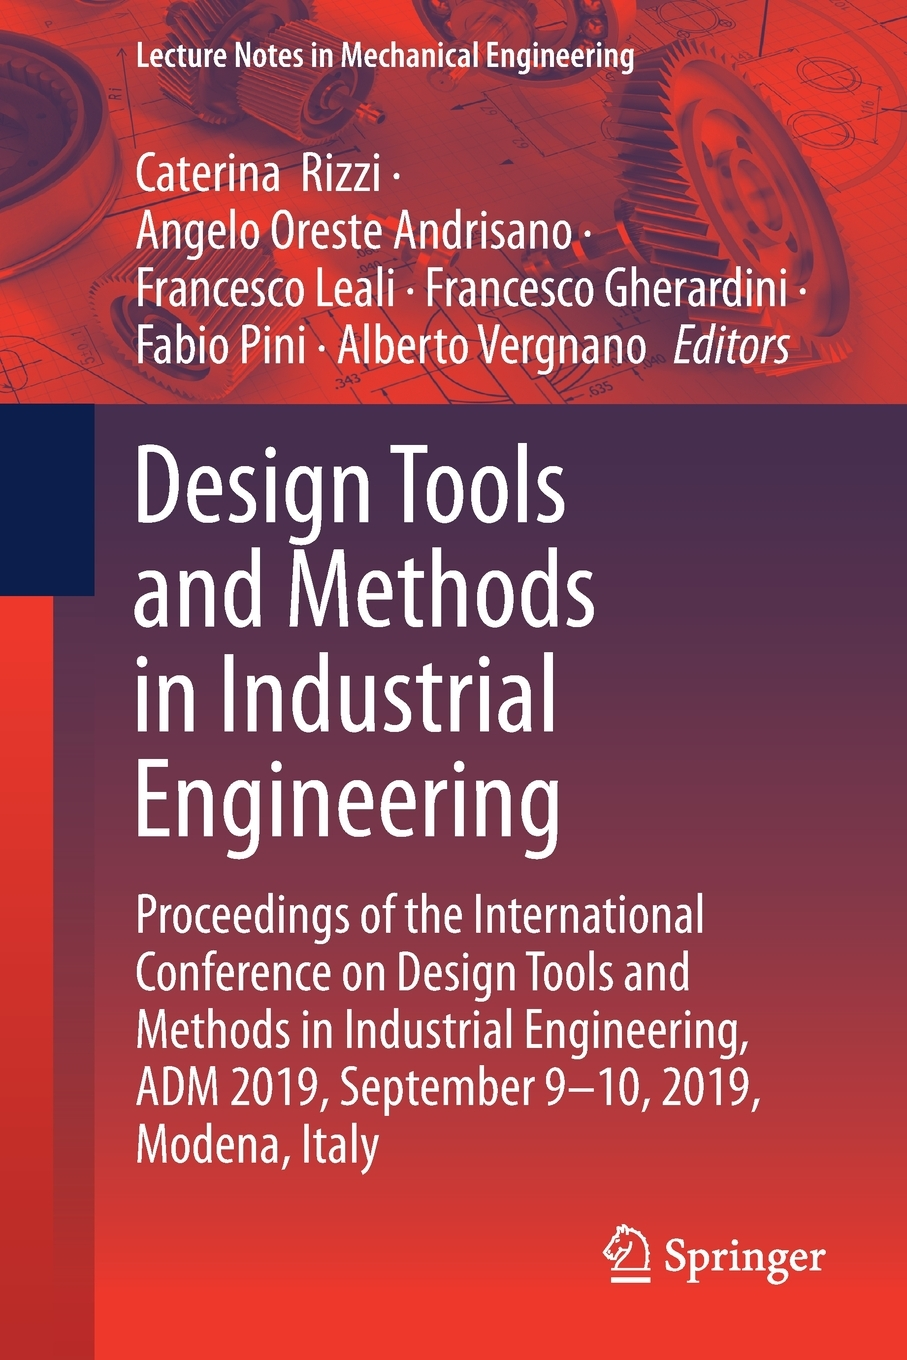 Lecture Notes In Mechanical Engineering Design Tools And Methods In Industrial Engineering Proceedings Of The International Conference On Design Tools And Methods In Industrial Engineering Adm 2019 Walmart Com